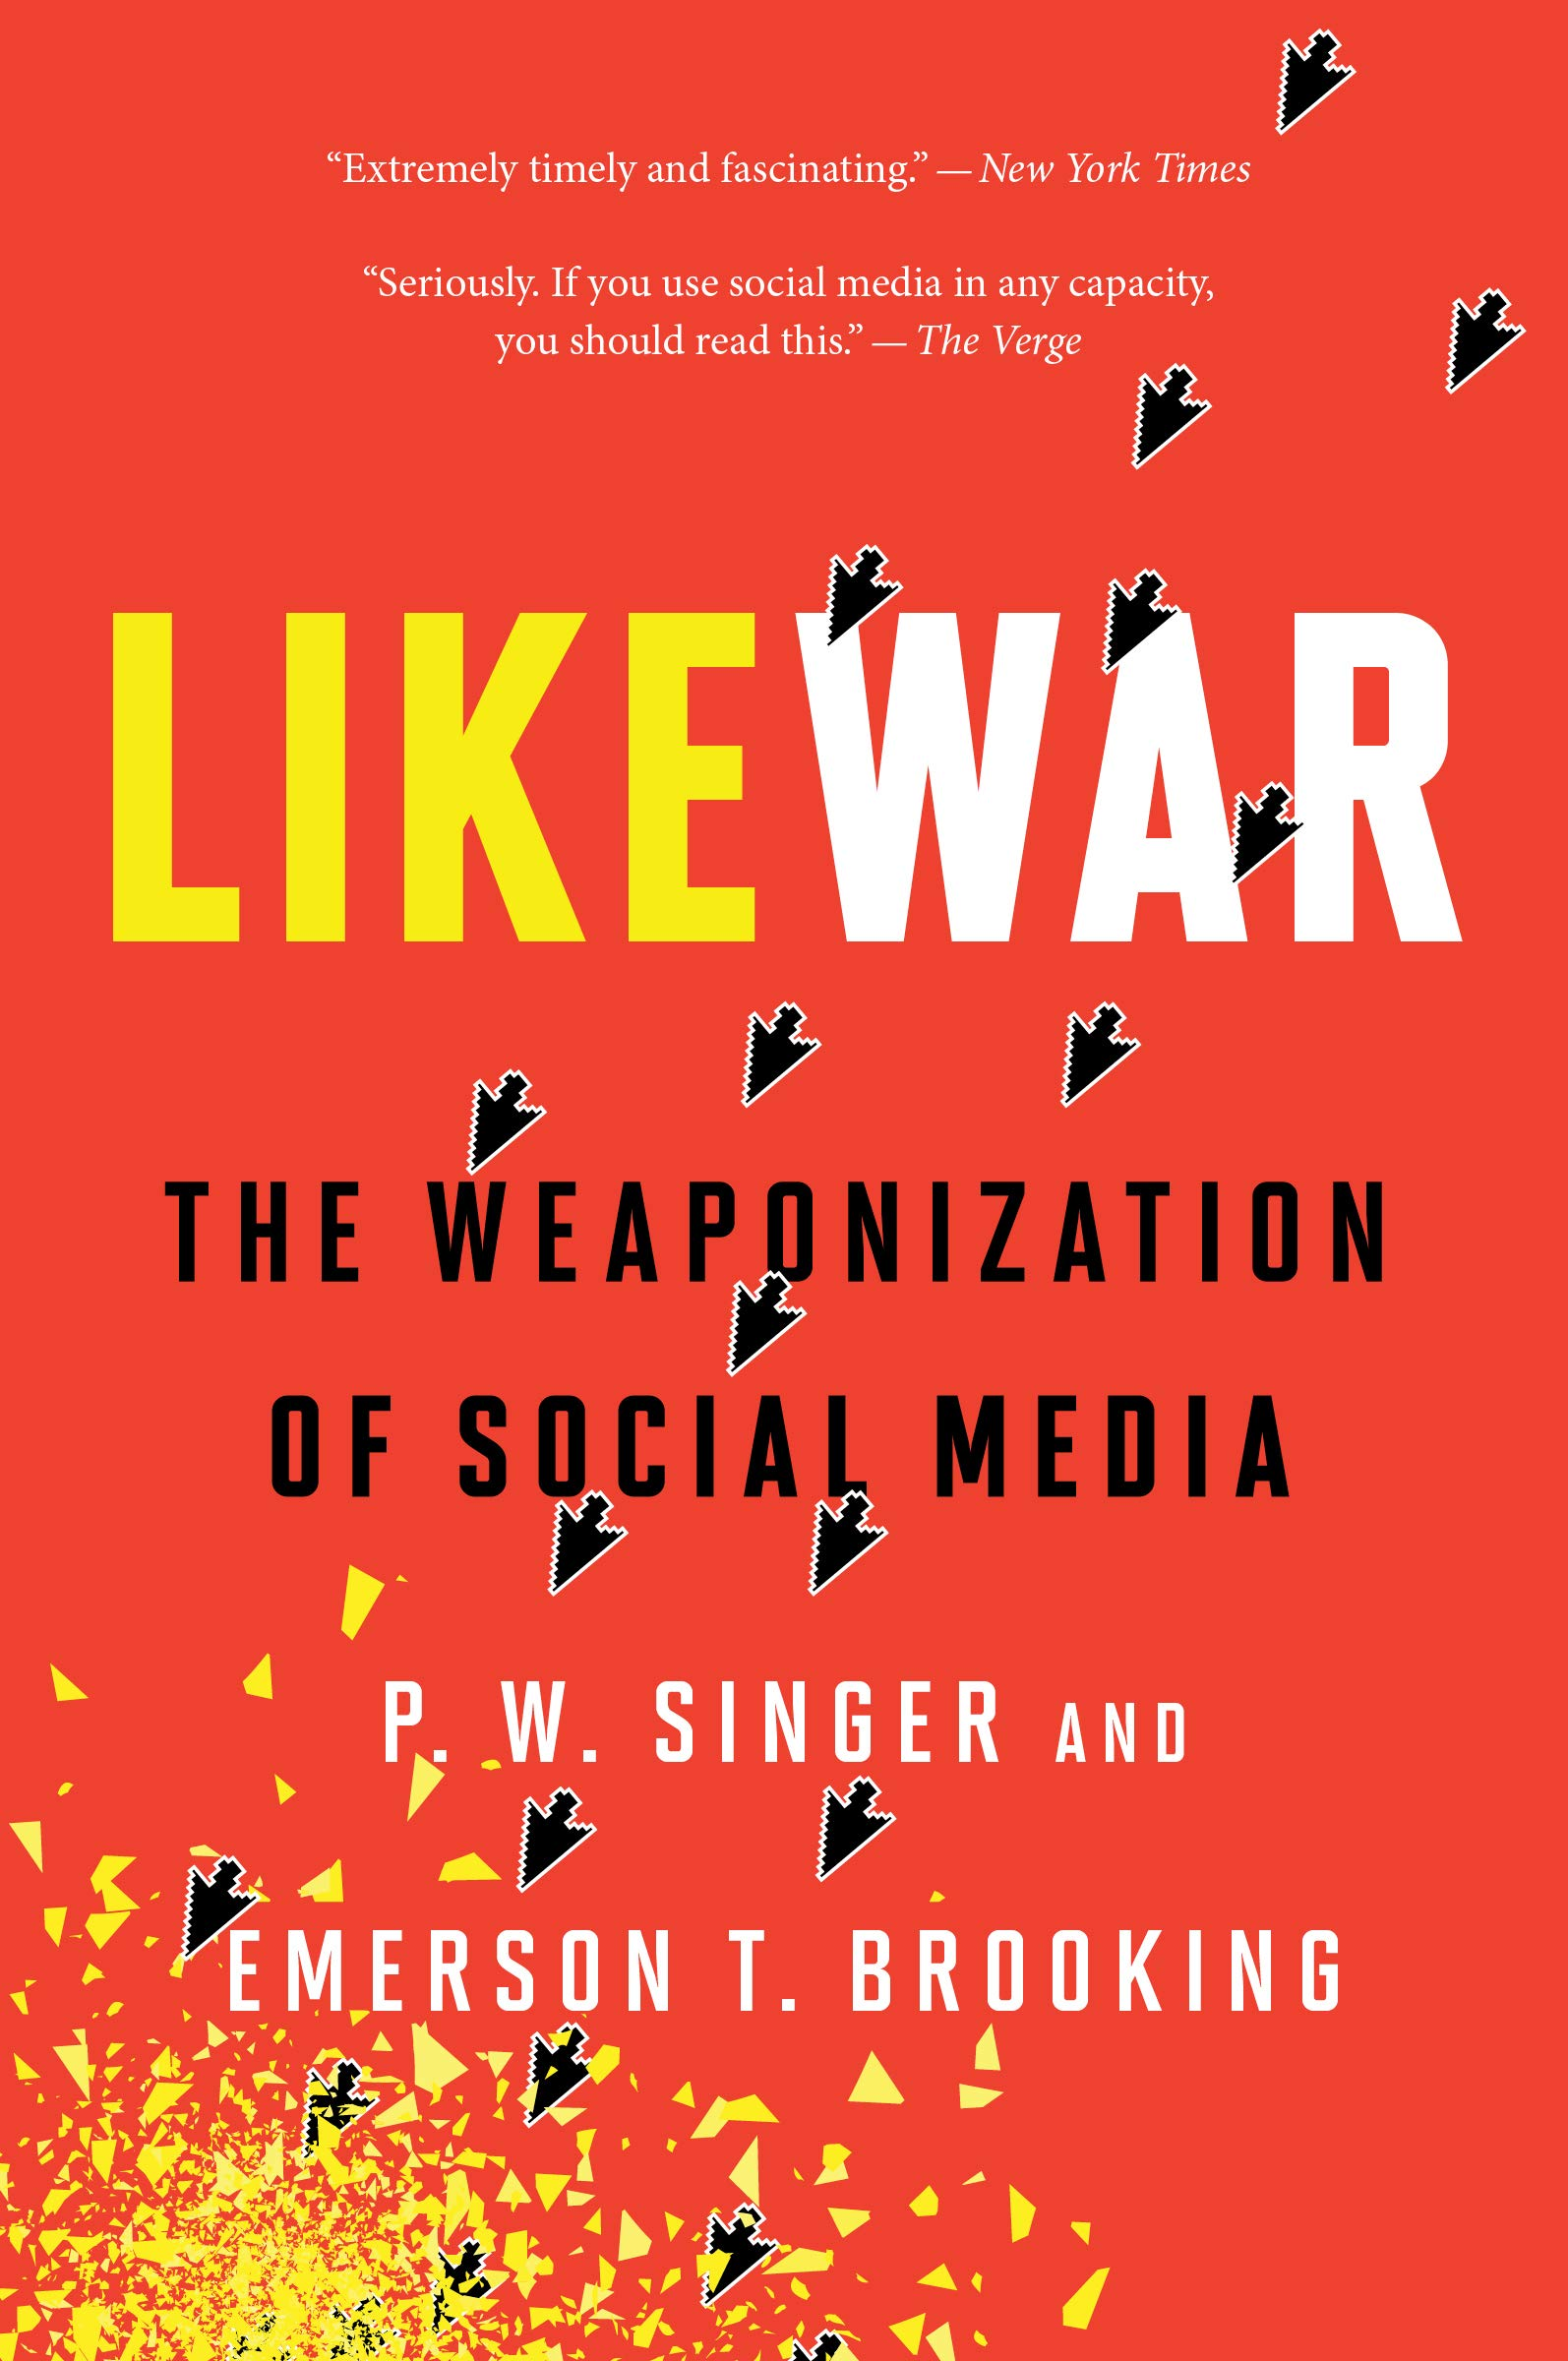 55c11a2829 LikeWar  The Weaponization of Social Media  P. W. Singer